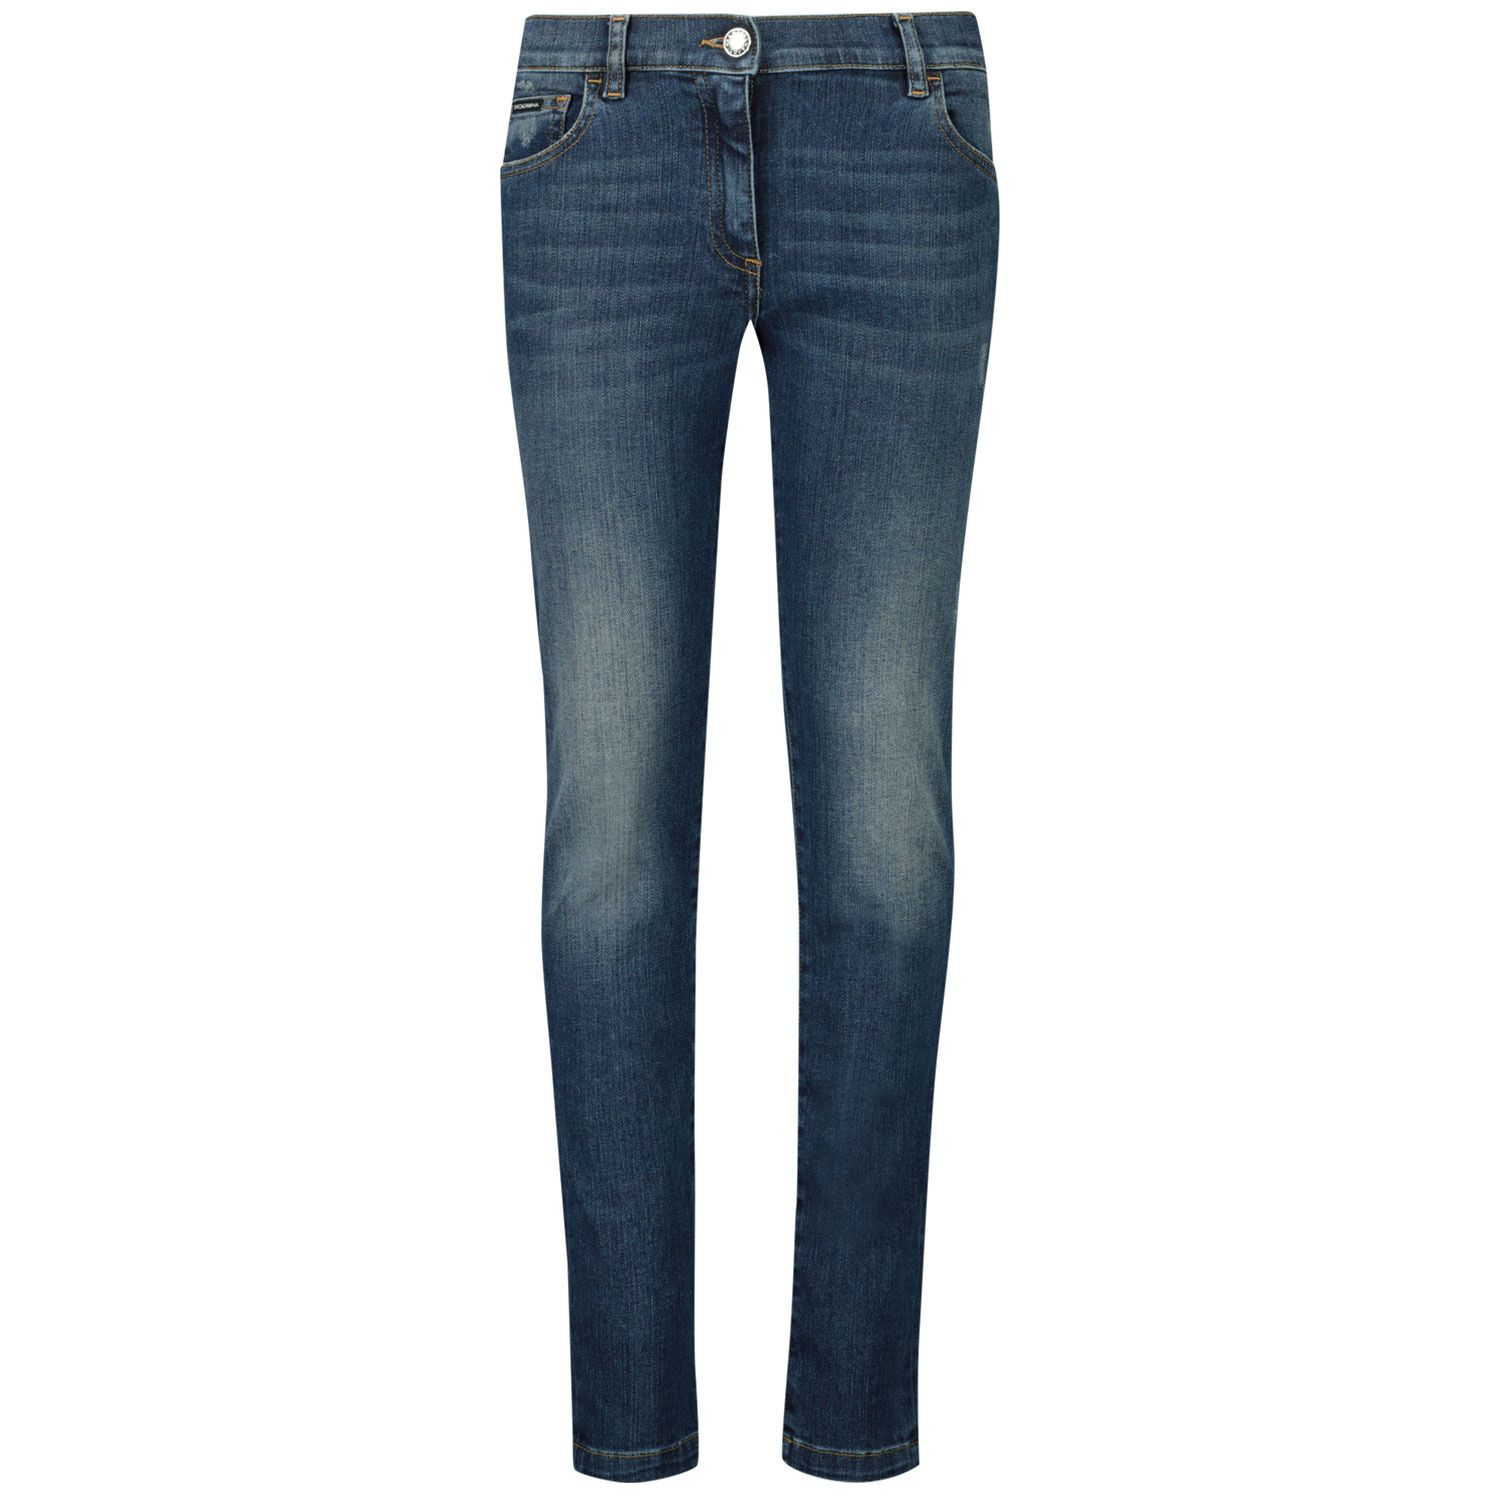 Picture of Dolce & Gabbana L51F69 LD954 kids jeans jeans